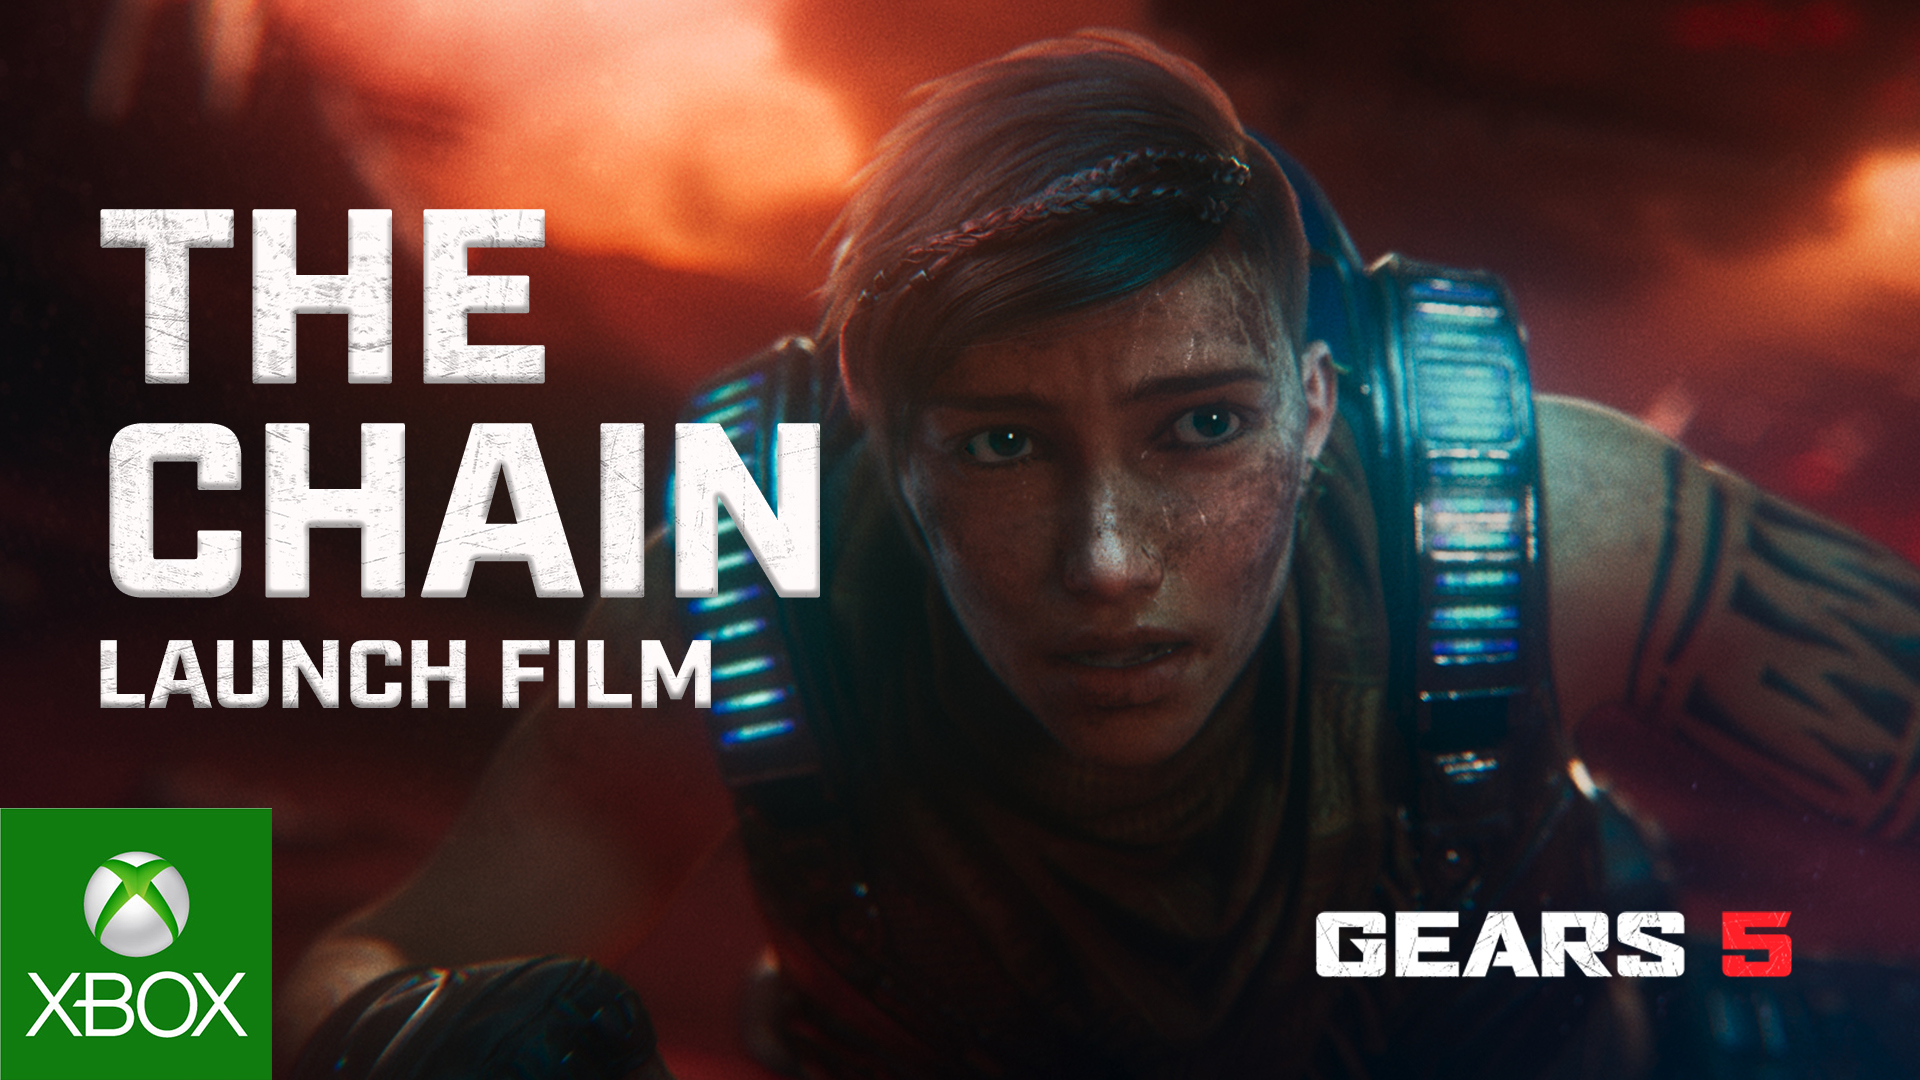 Gears 5 for Xbox One and Windows 10 | Xbox